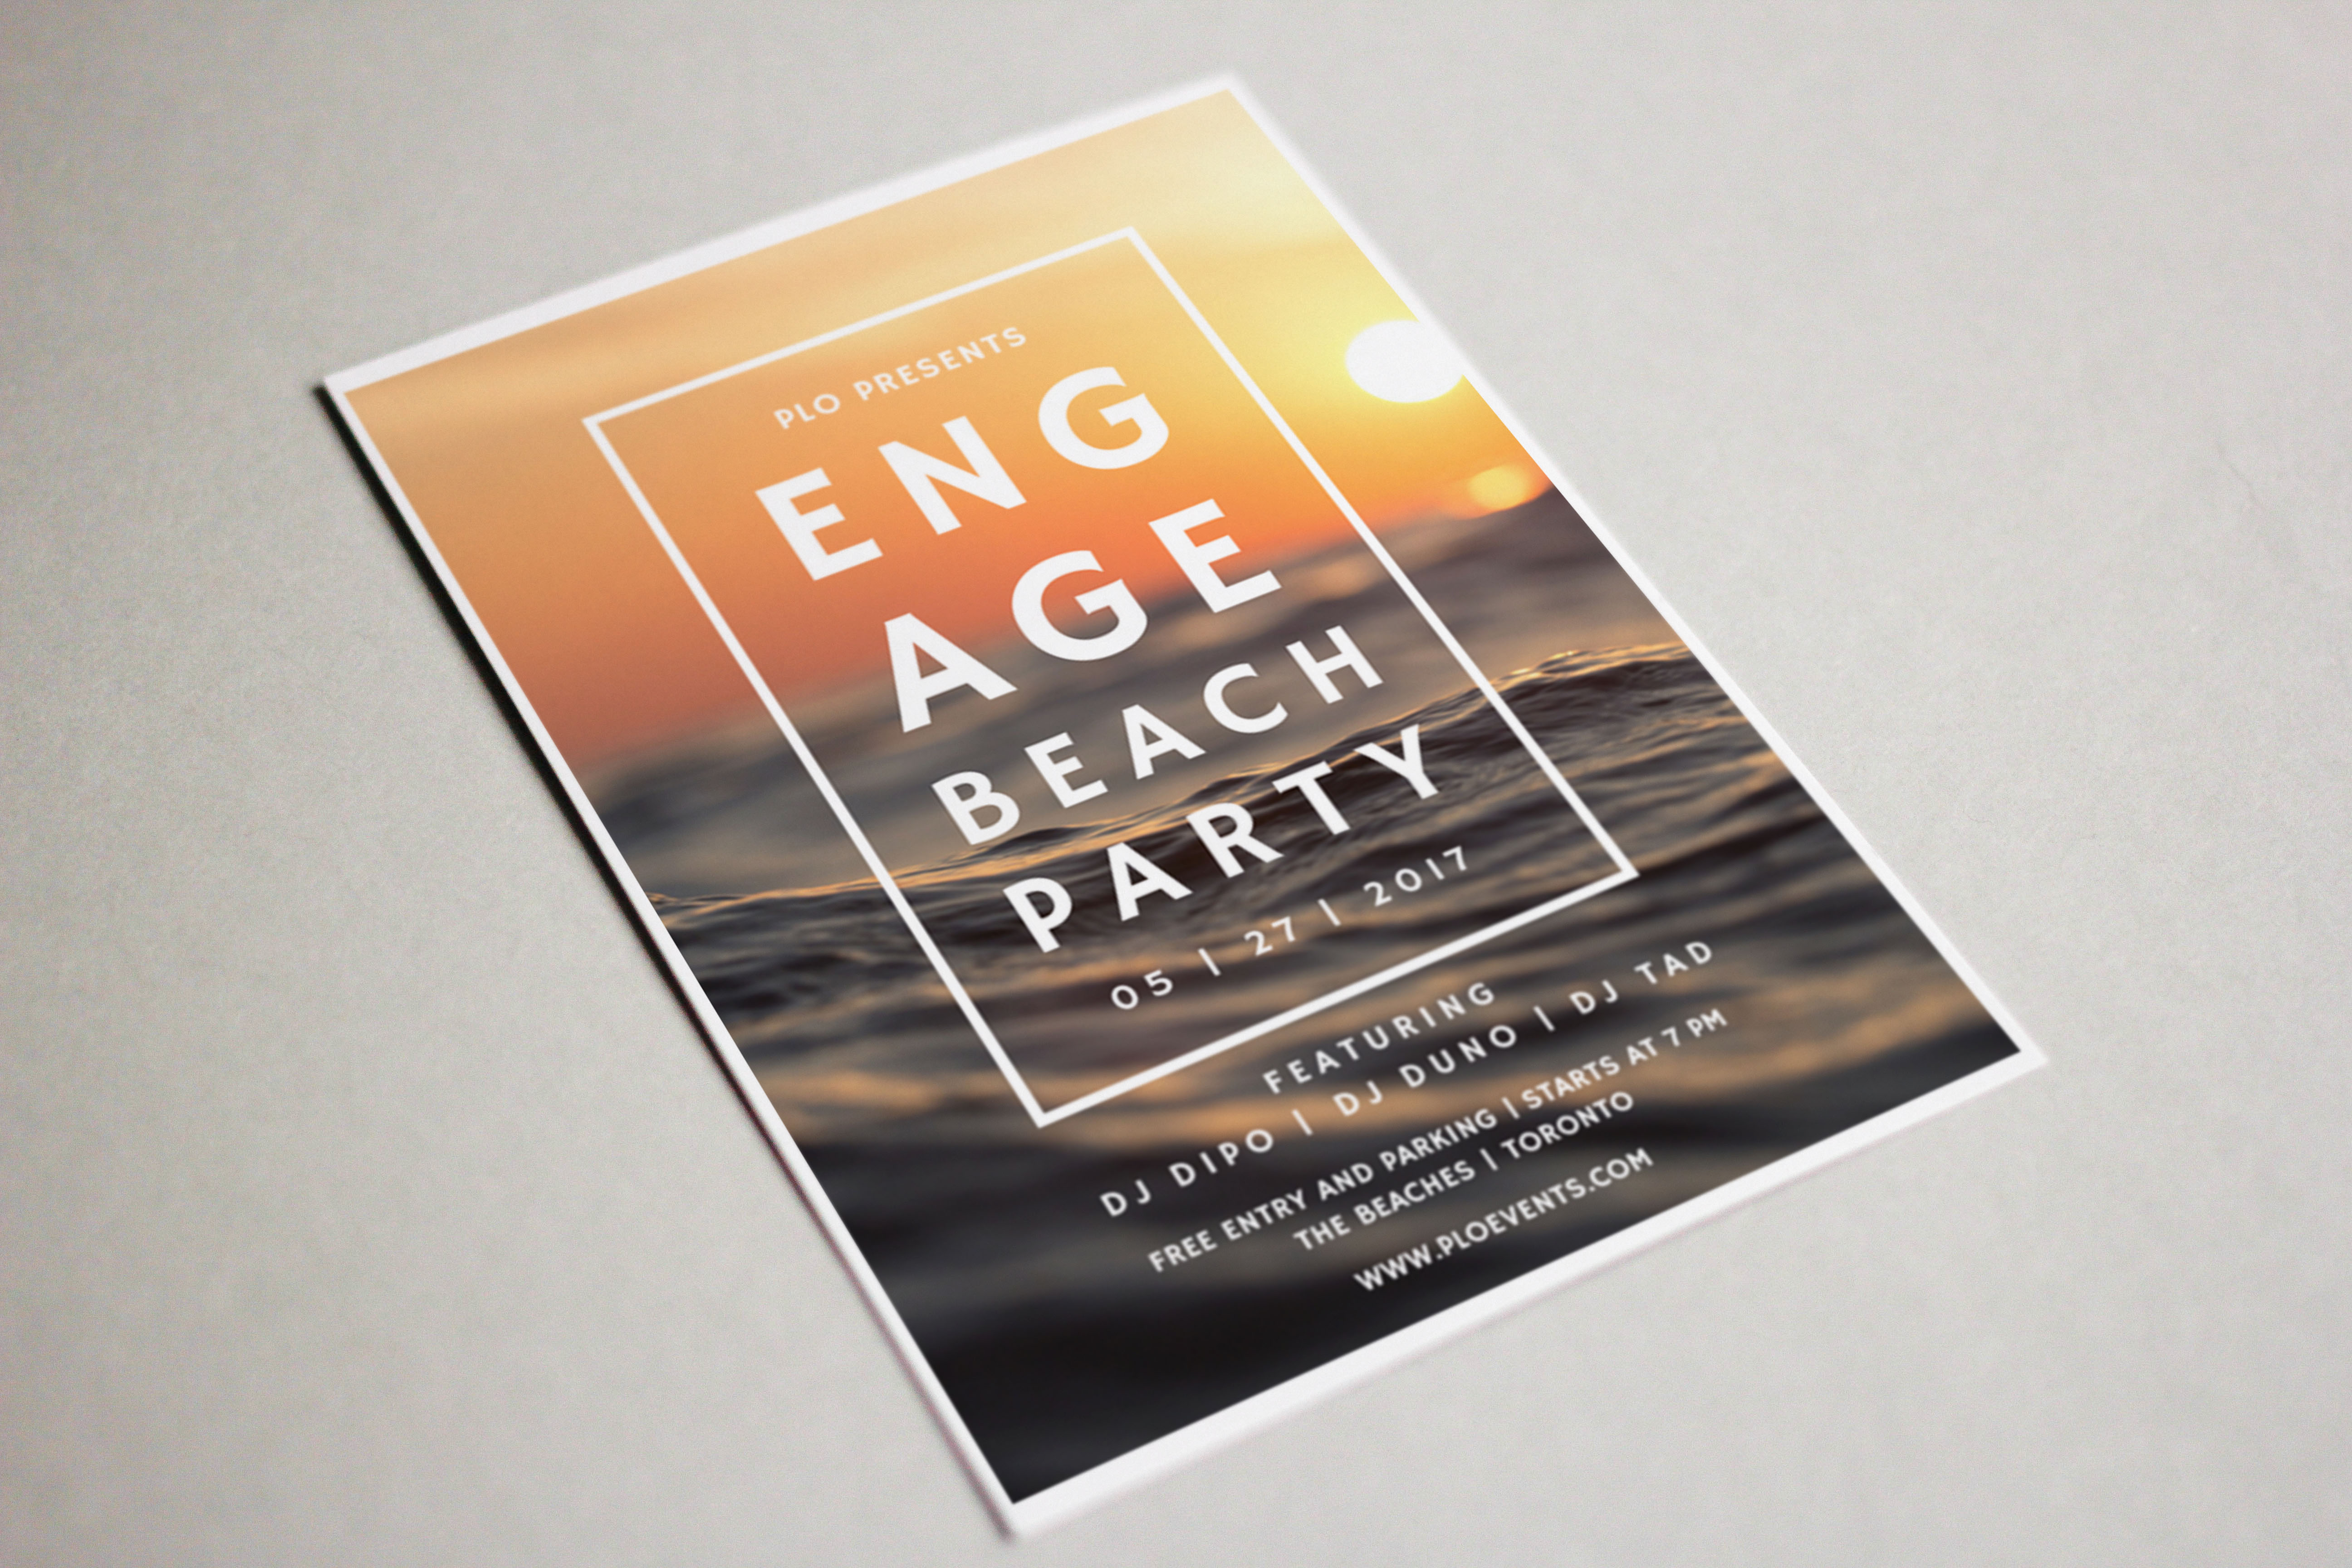 Engage Beach Party